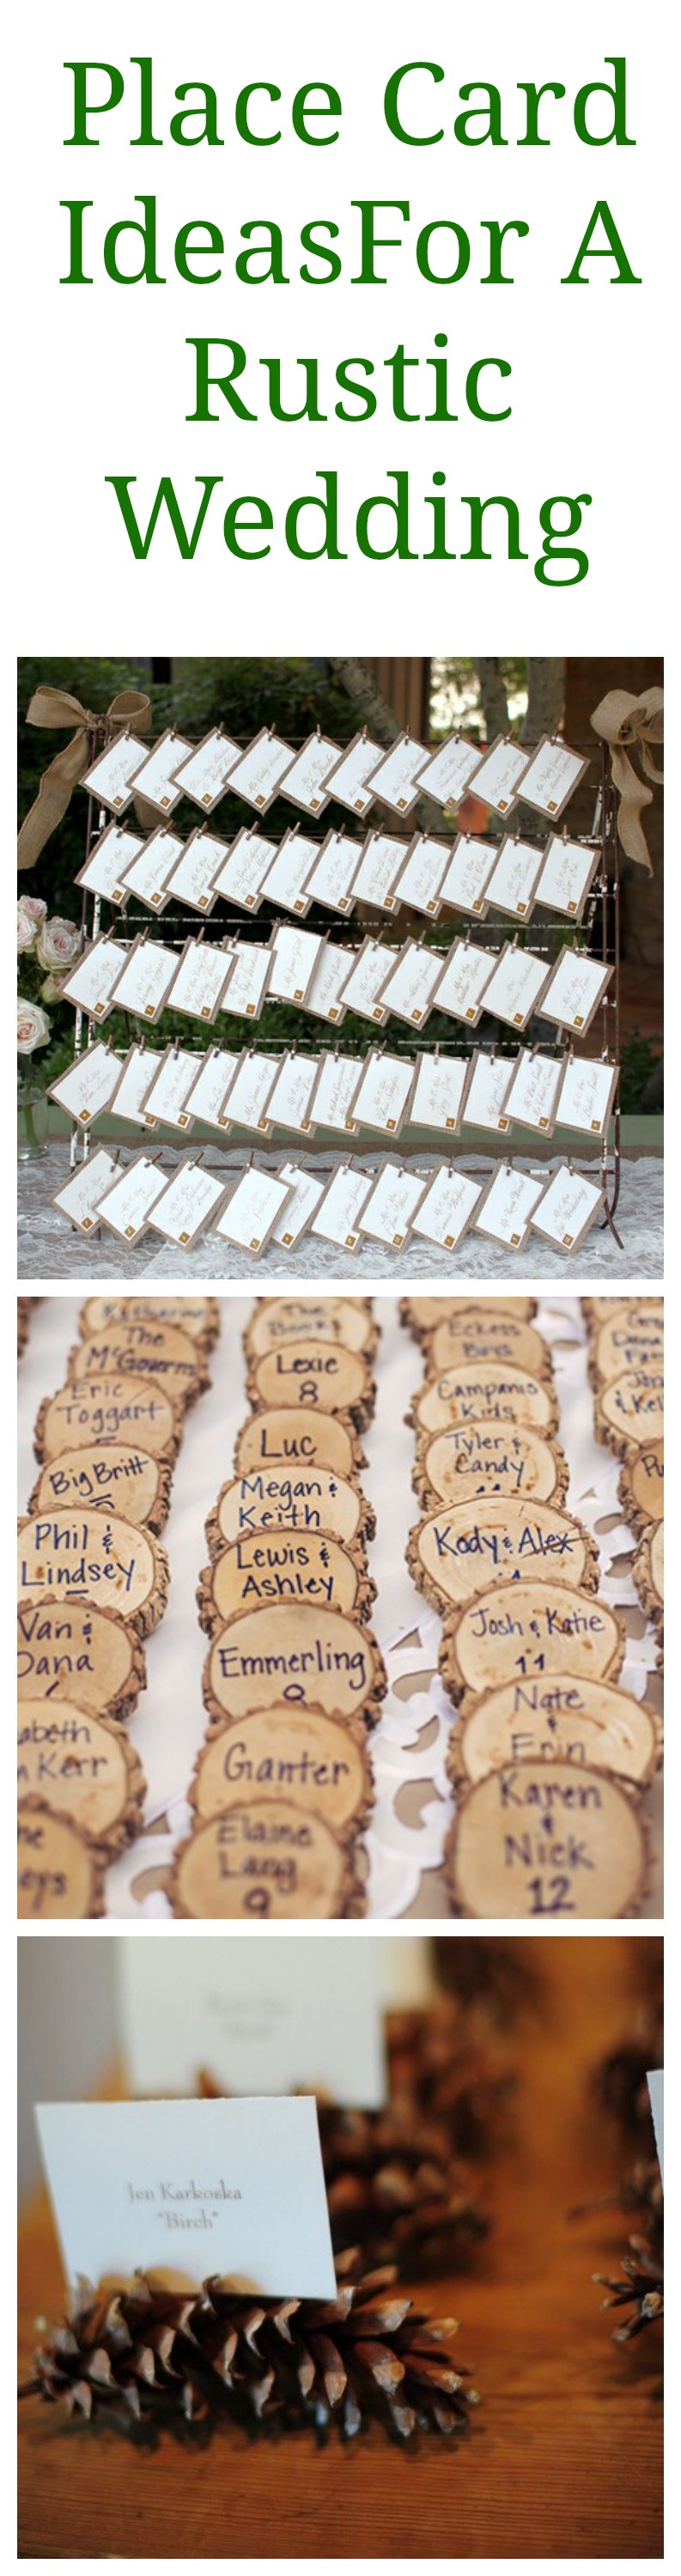 Rustic wedding place card display ideas rustic wedding chic for Place card for wedding